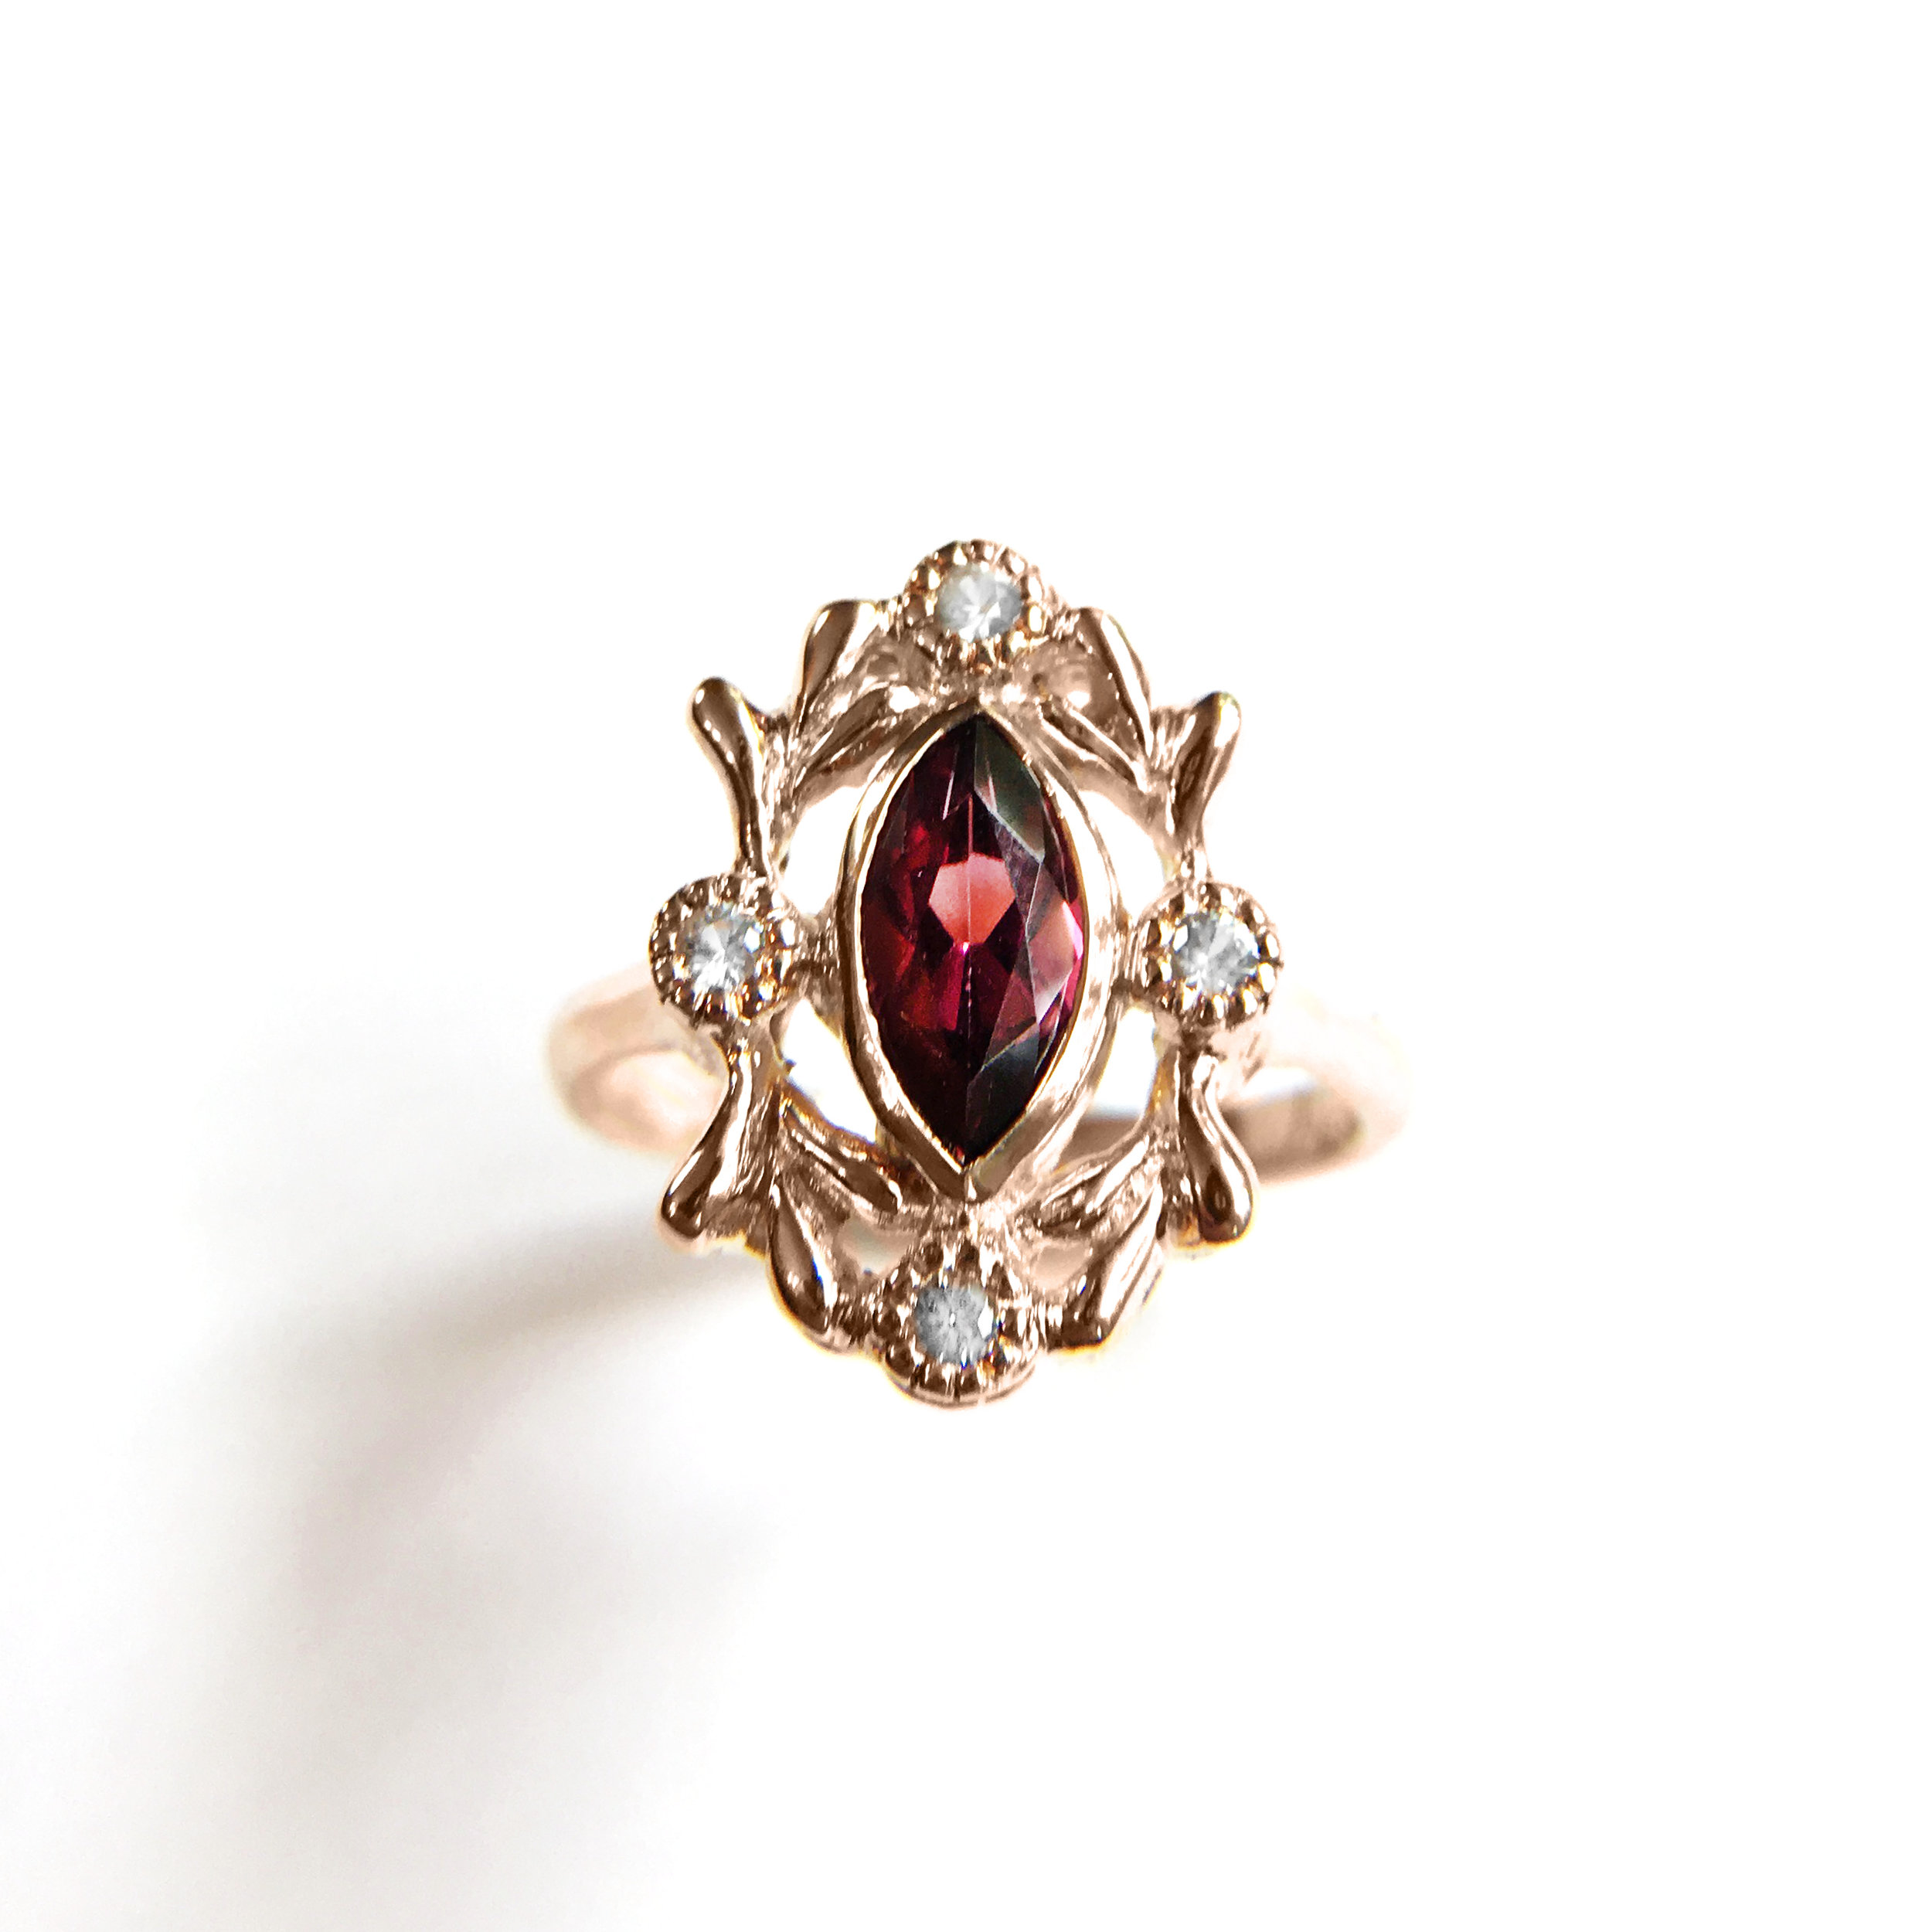 French Rococo inspired cocktail ring